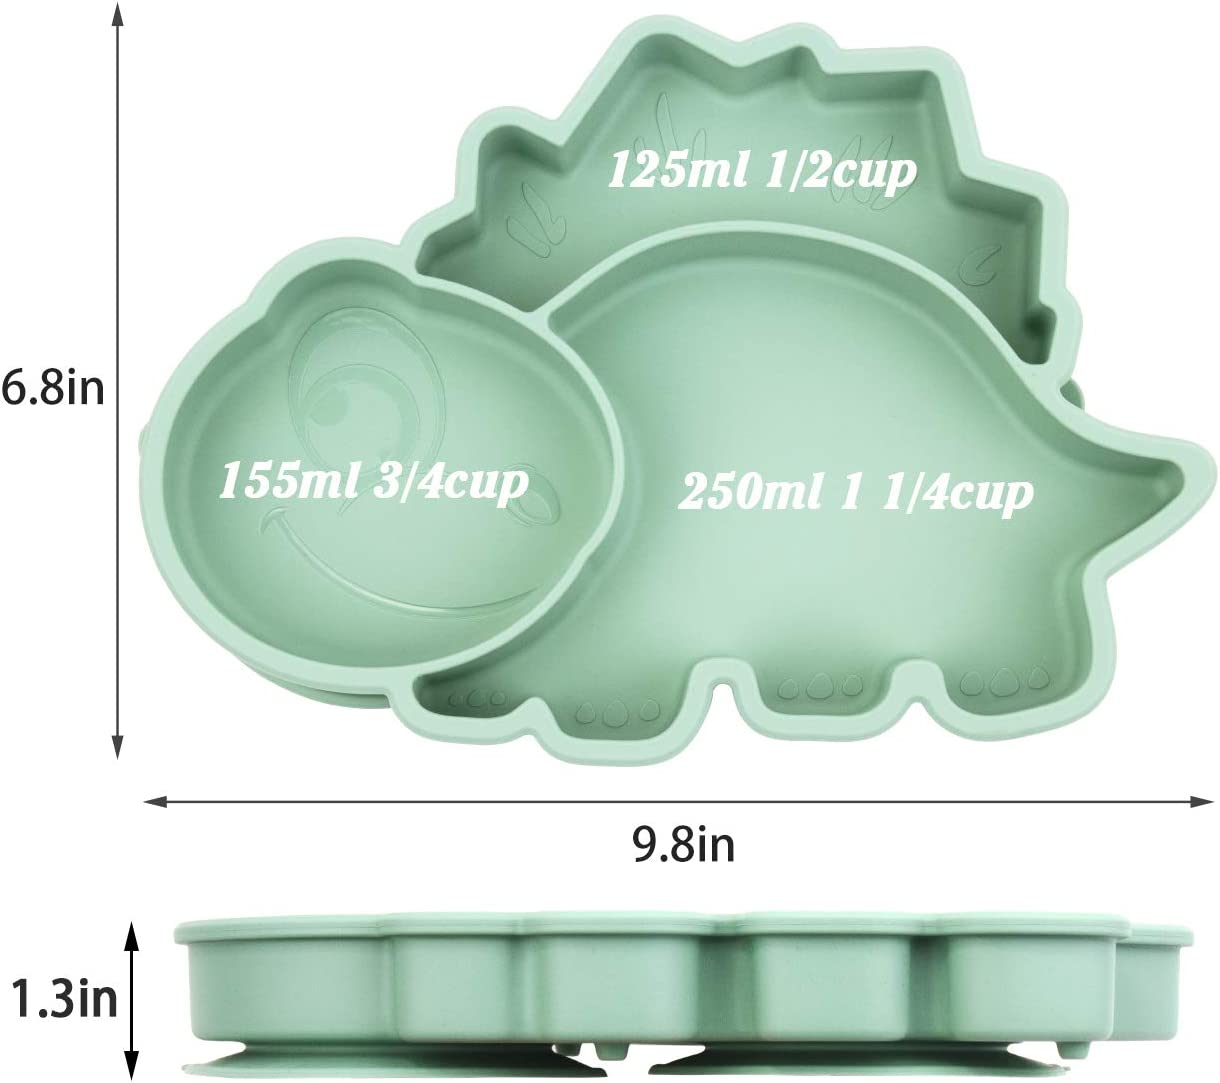 Portable Non Slip Suction Toddler Plates for Children Babies and Kids BPA Free FDA Approved Baby Dinner Plate Silicone Baby Plates Divided Dishwasher and Microwave Safe